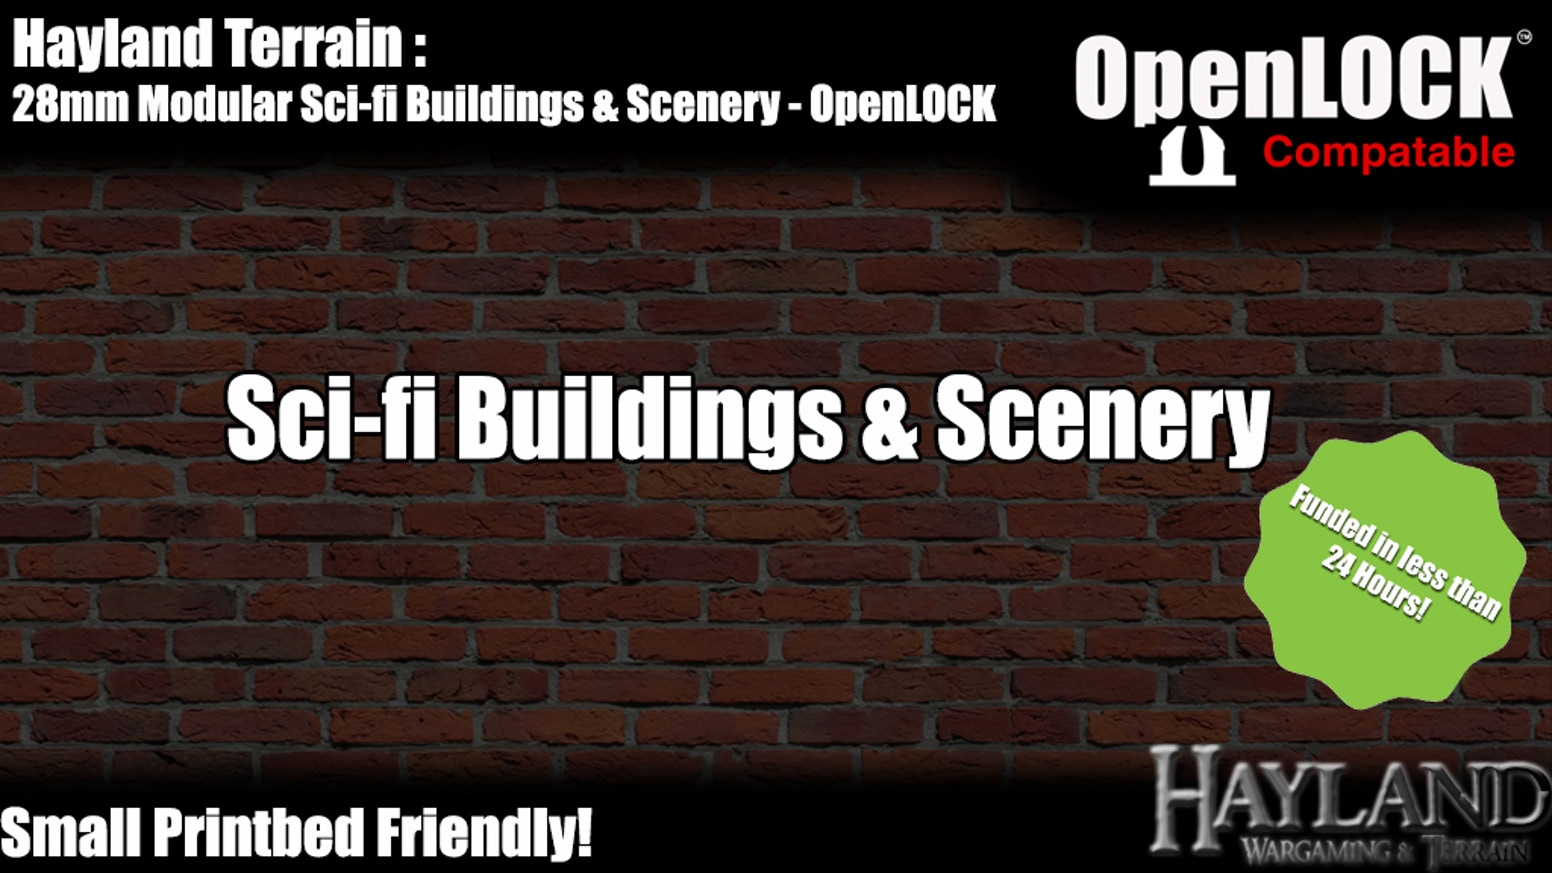 28mm Modular Sci-fi Buildings & Scenery - OpenLOCK - STL FILES - 3D printable Buildings and Scenery! - Small Print Bed Friendly. -